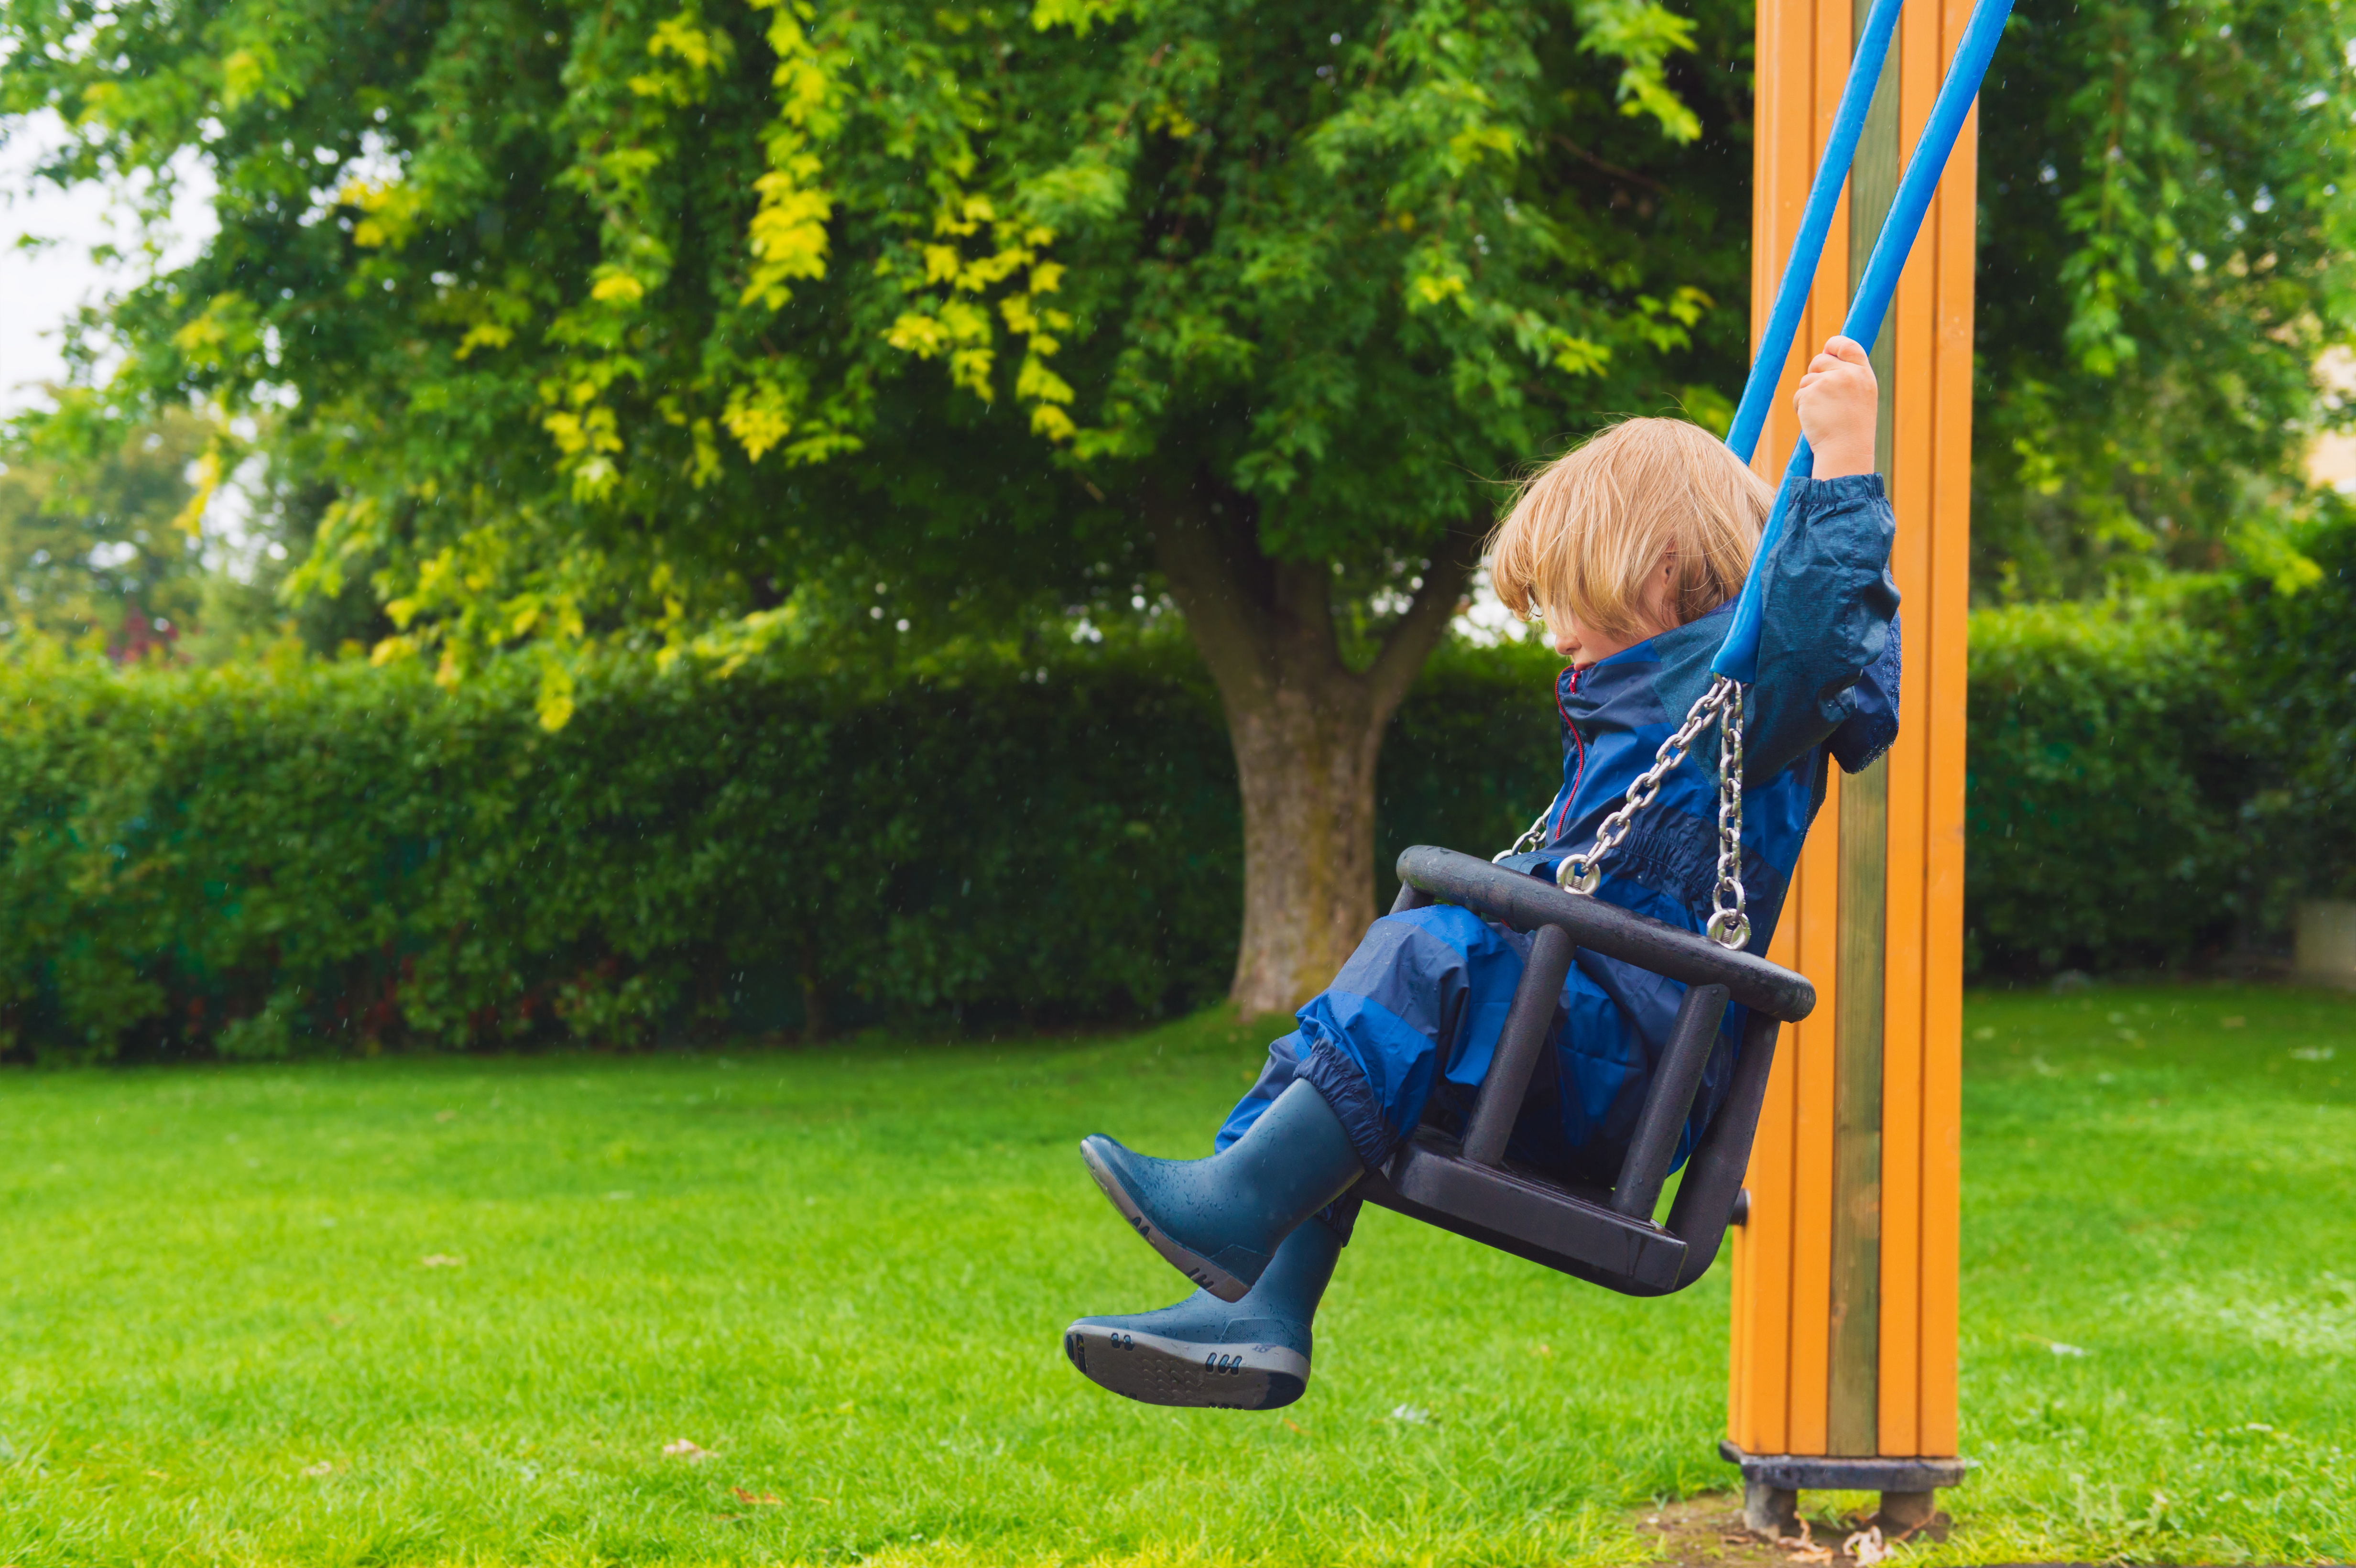 Cute little boy having fun on a swing on a rainy day, wearing blue waterpoof all-in-one suit